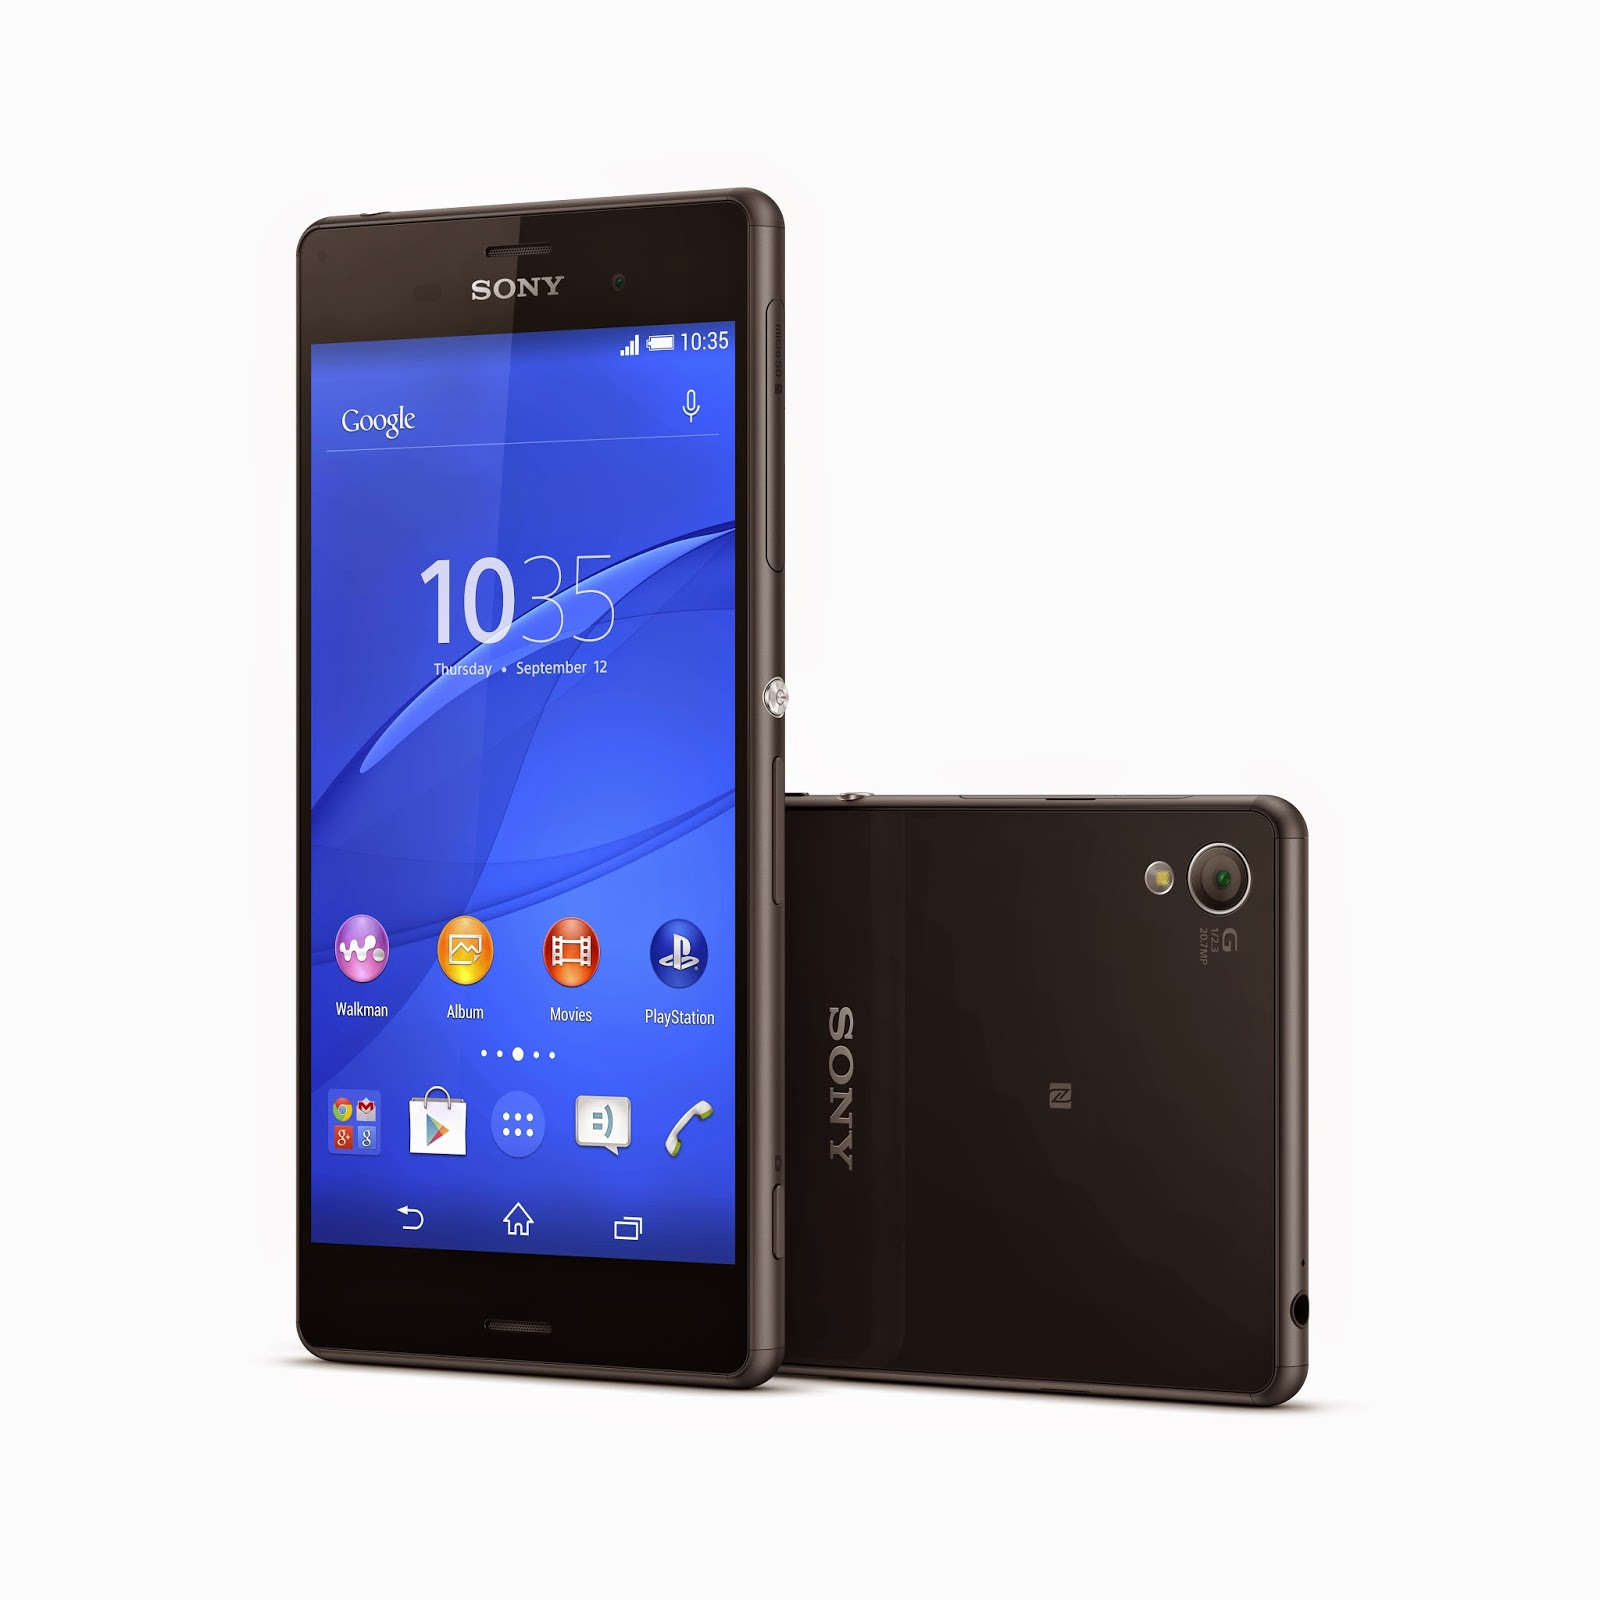 how to delete message on sony experia